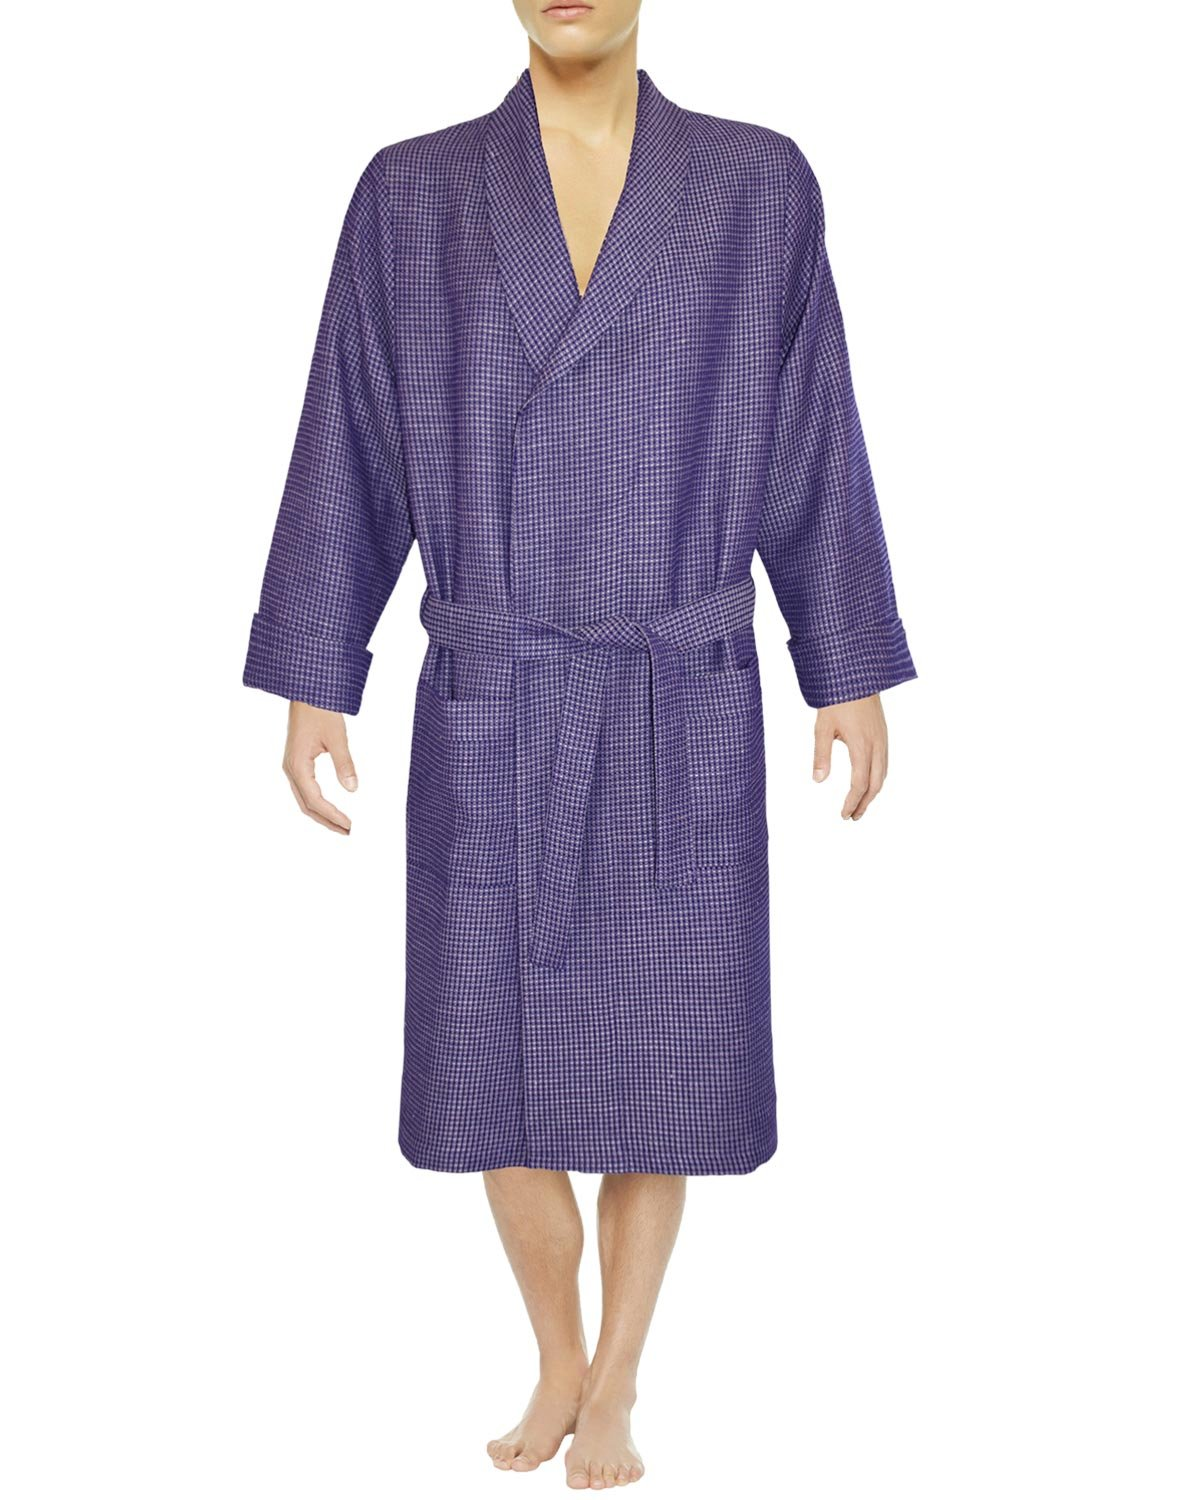 Armani International Men's Waffle Bath Robe Large Indigo/Beige